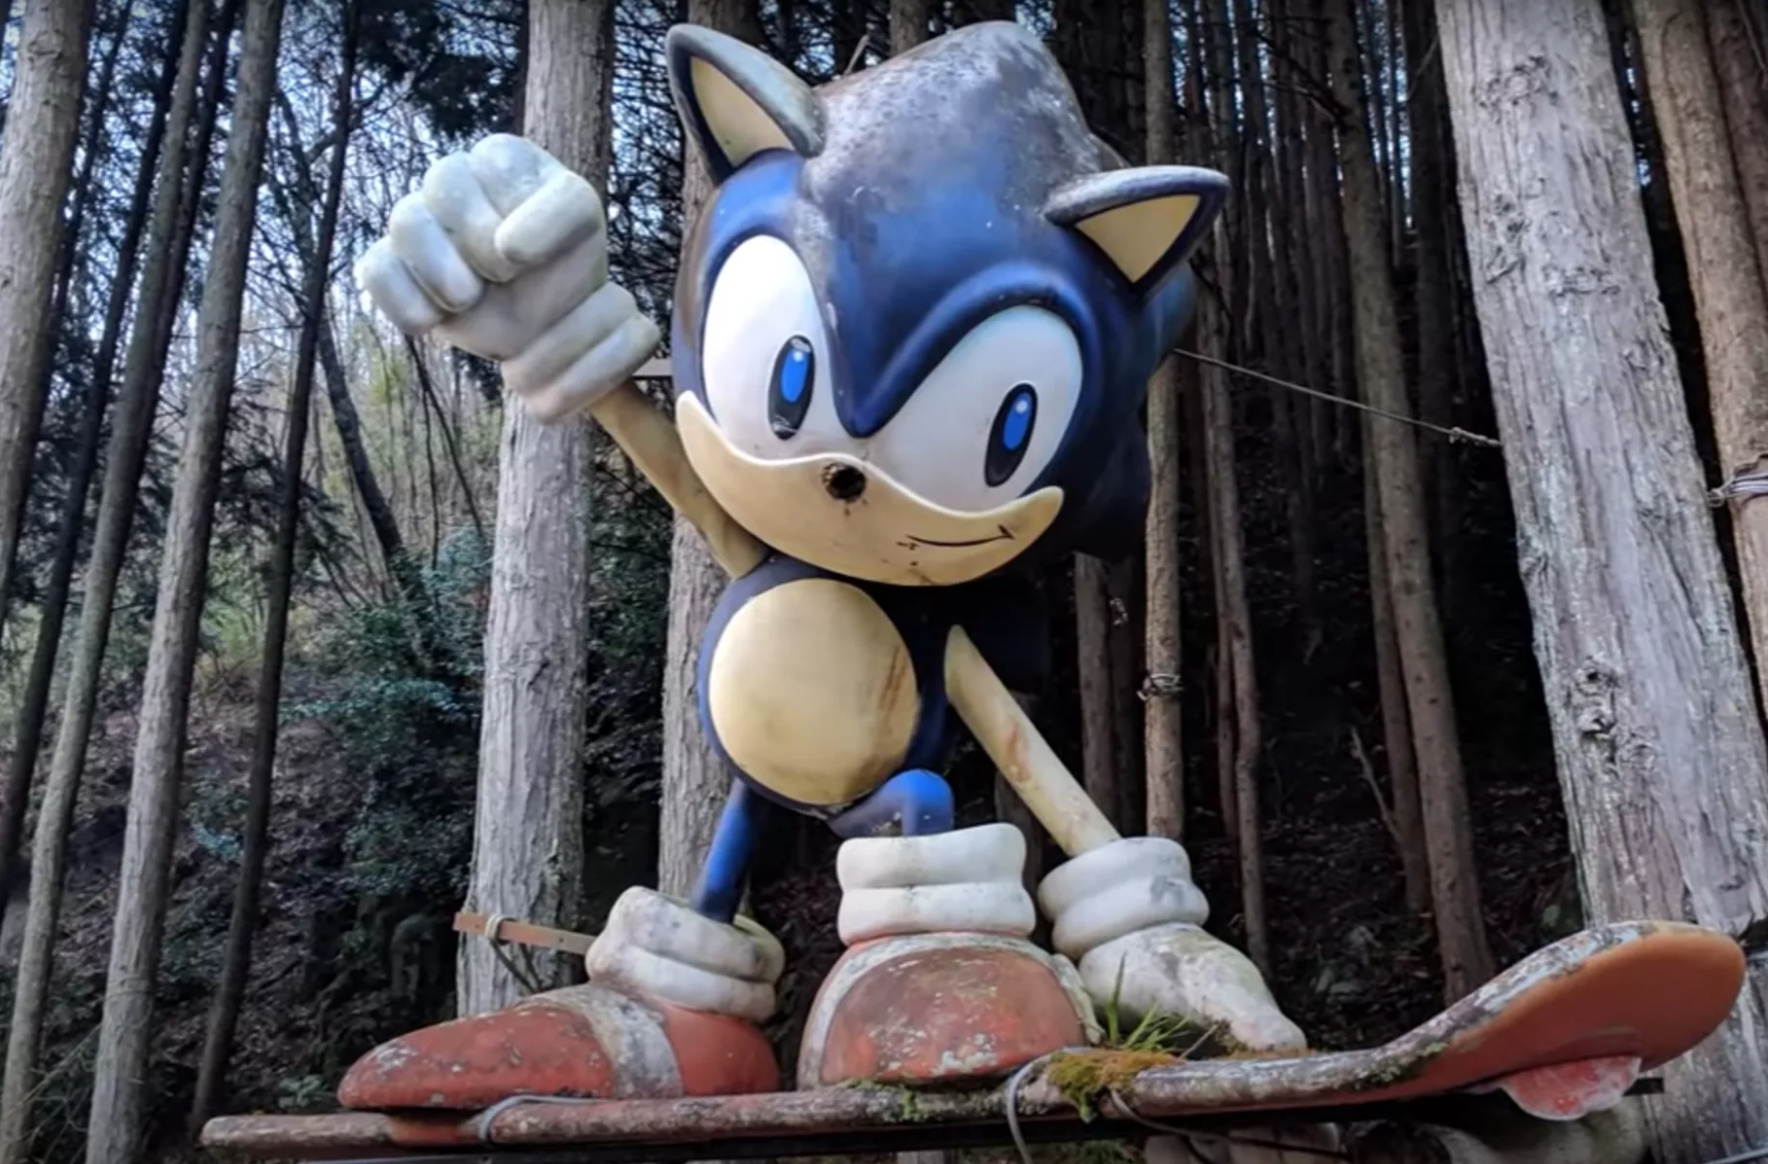 Random Japan S Mysterious Sonic Statue Receives A Fittingly Puzzling Restoration Nintendo Life